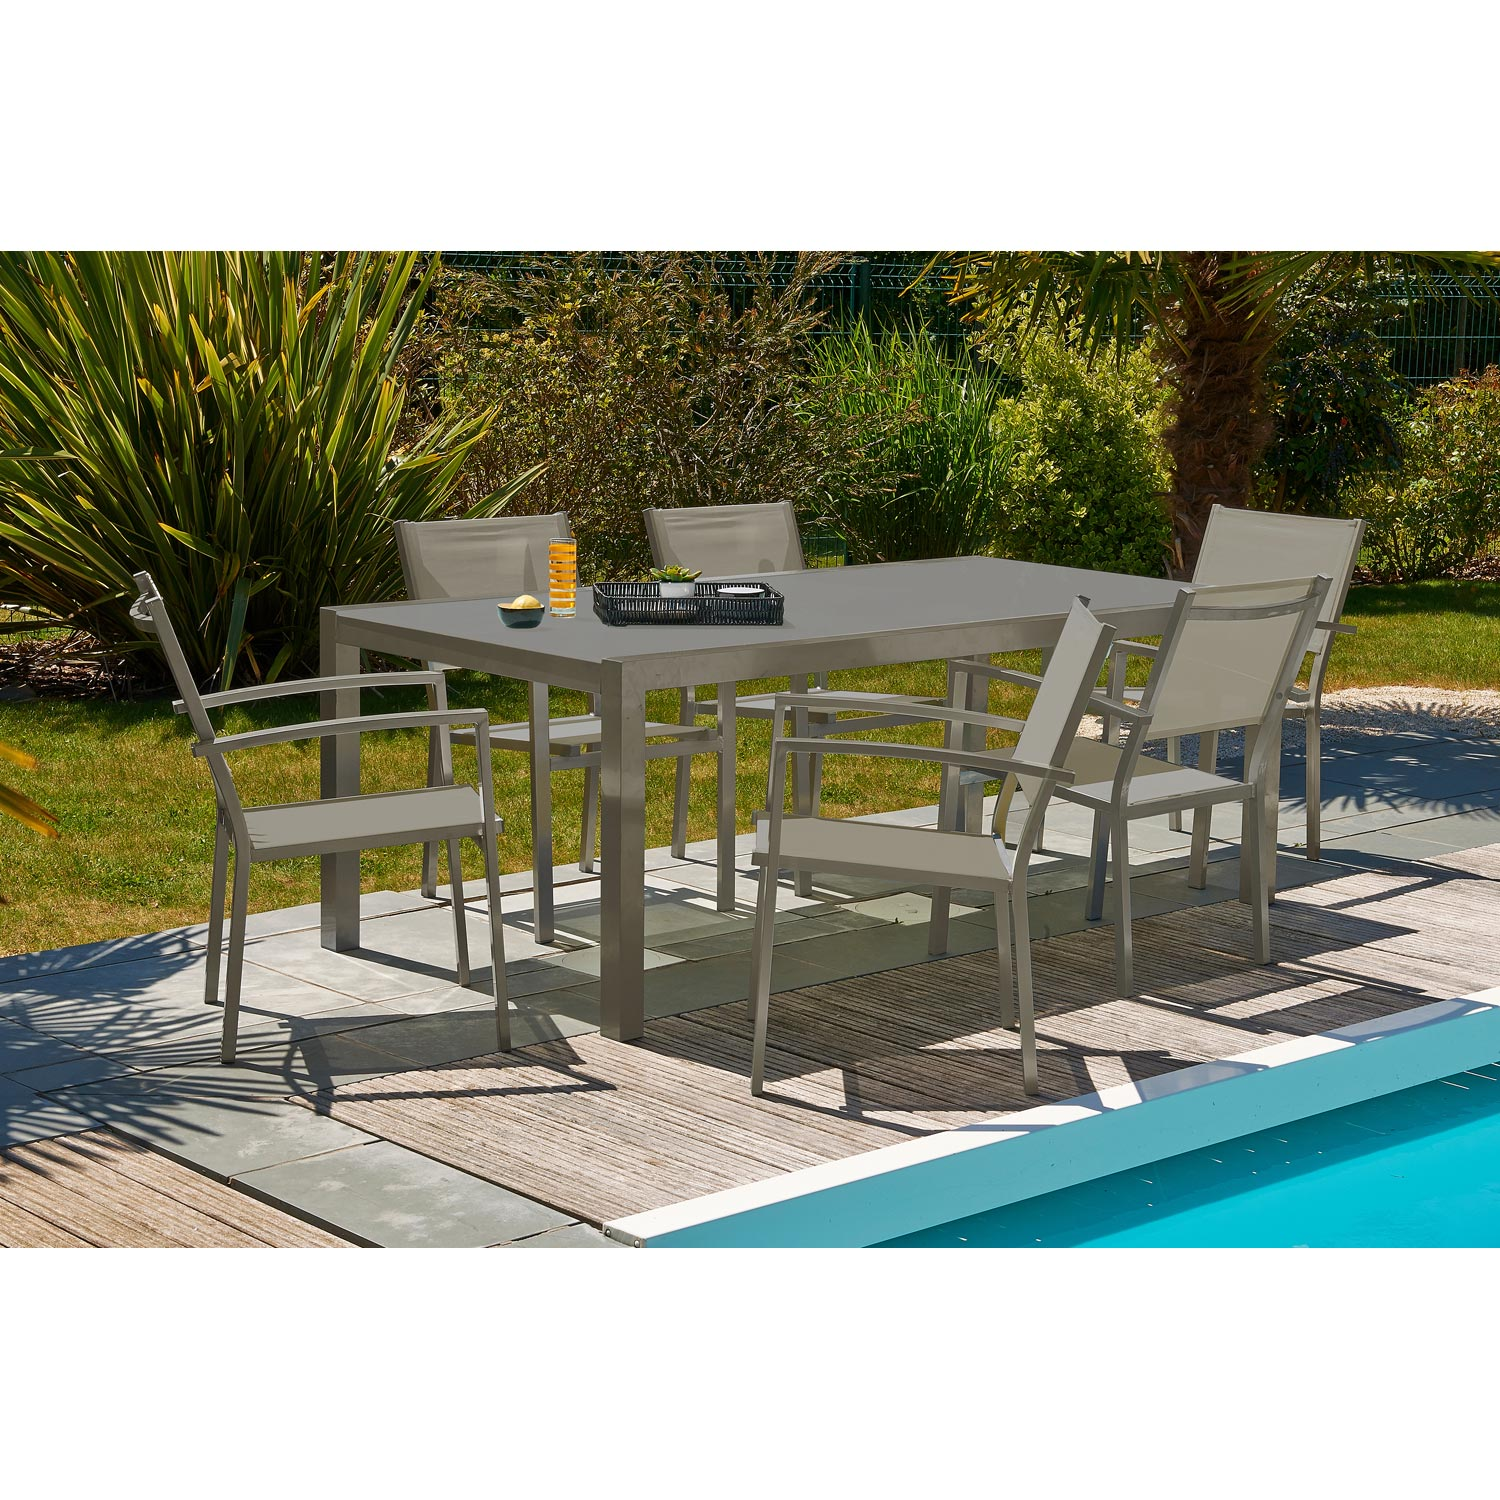 Salon de jardin London aluminium brun marron, 6 personnes | Leroy Merlin